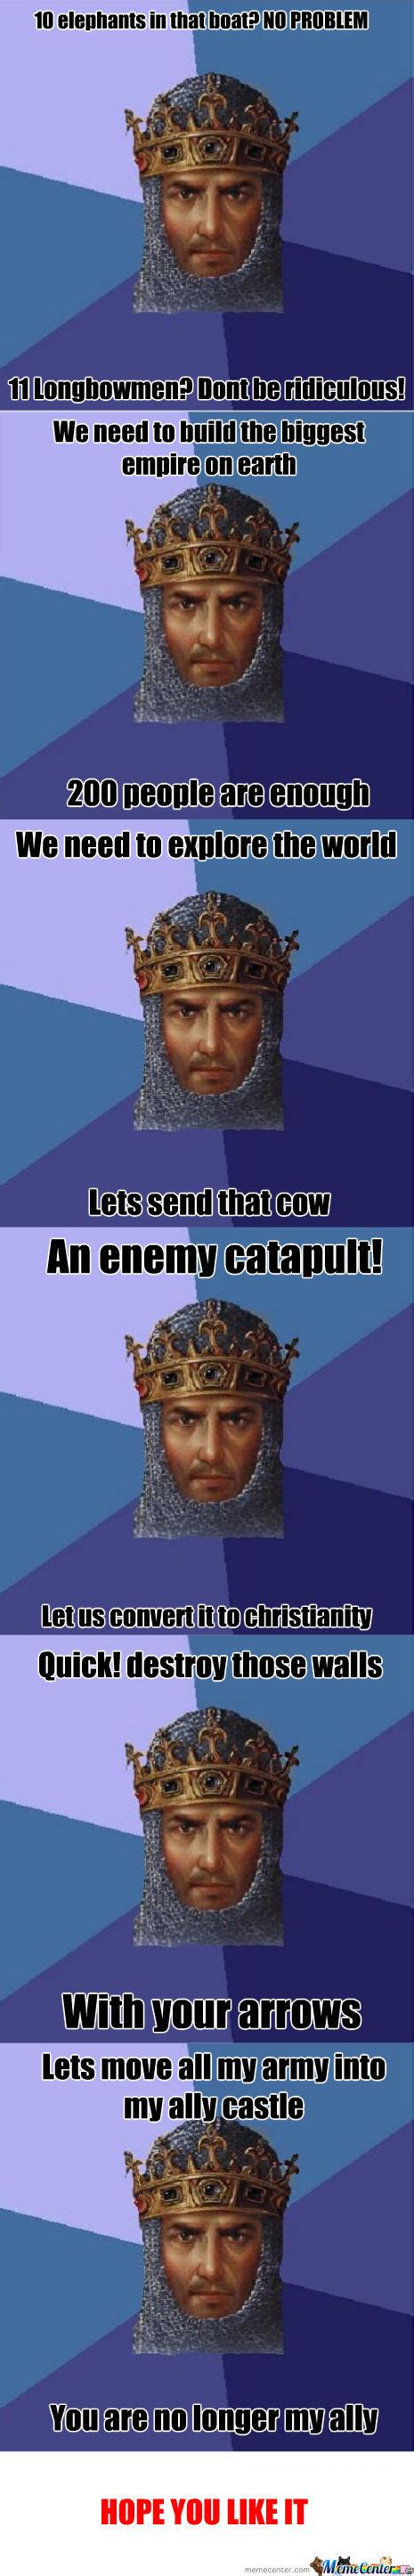 Age Of Empire Meme - age of empires meme recopilation by francisco9622 meme